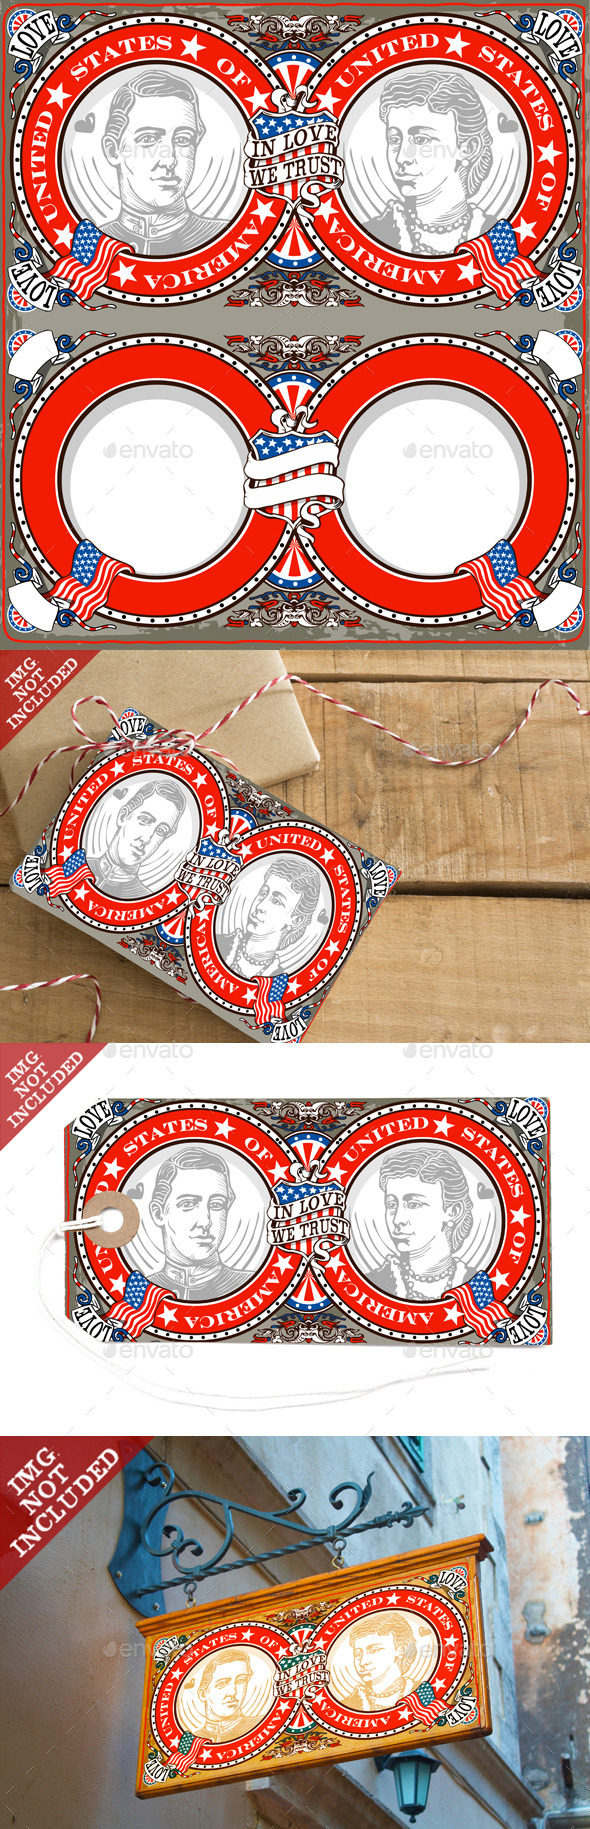 American Vintage Patriot Wedding Invite - Weddings Seasons/Holidays